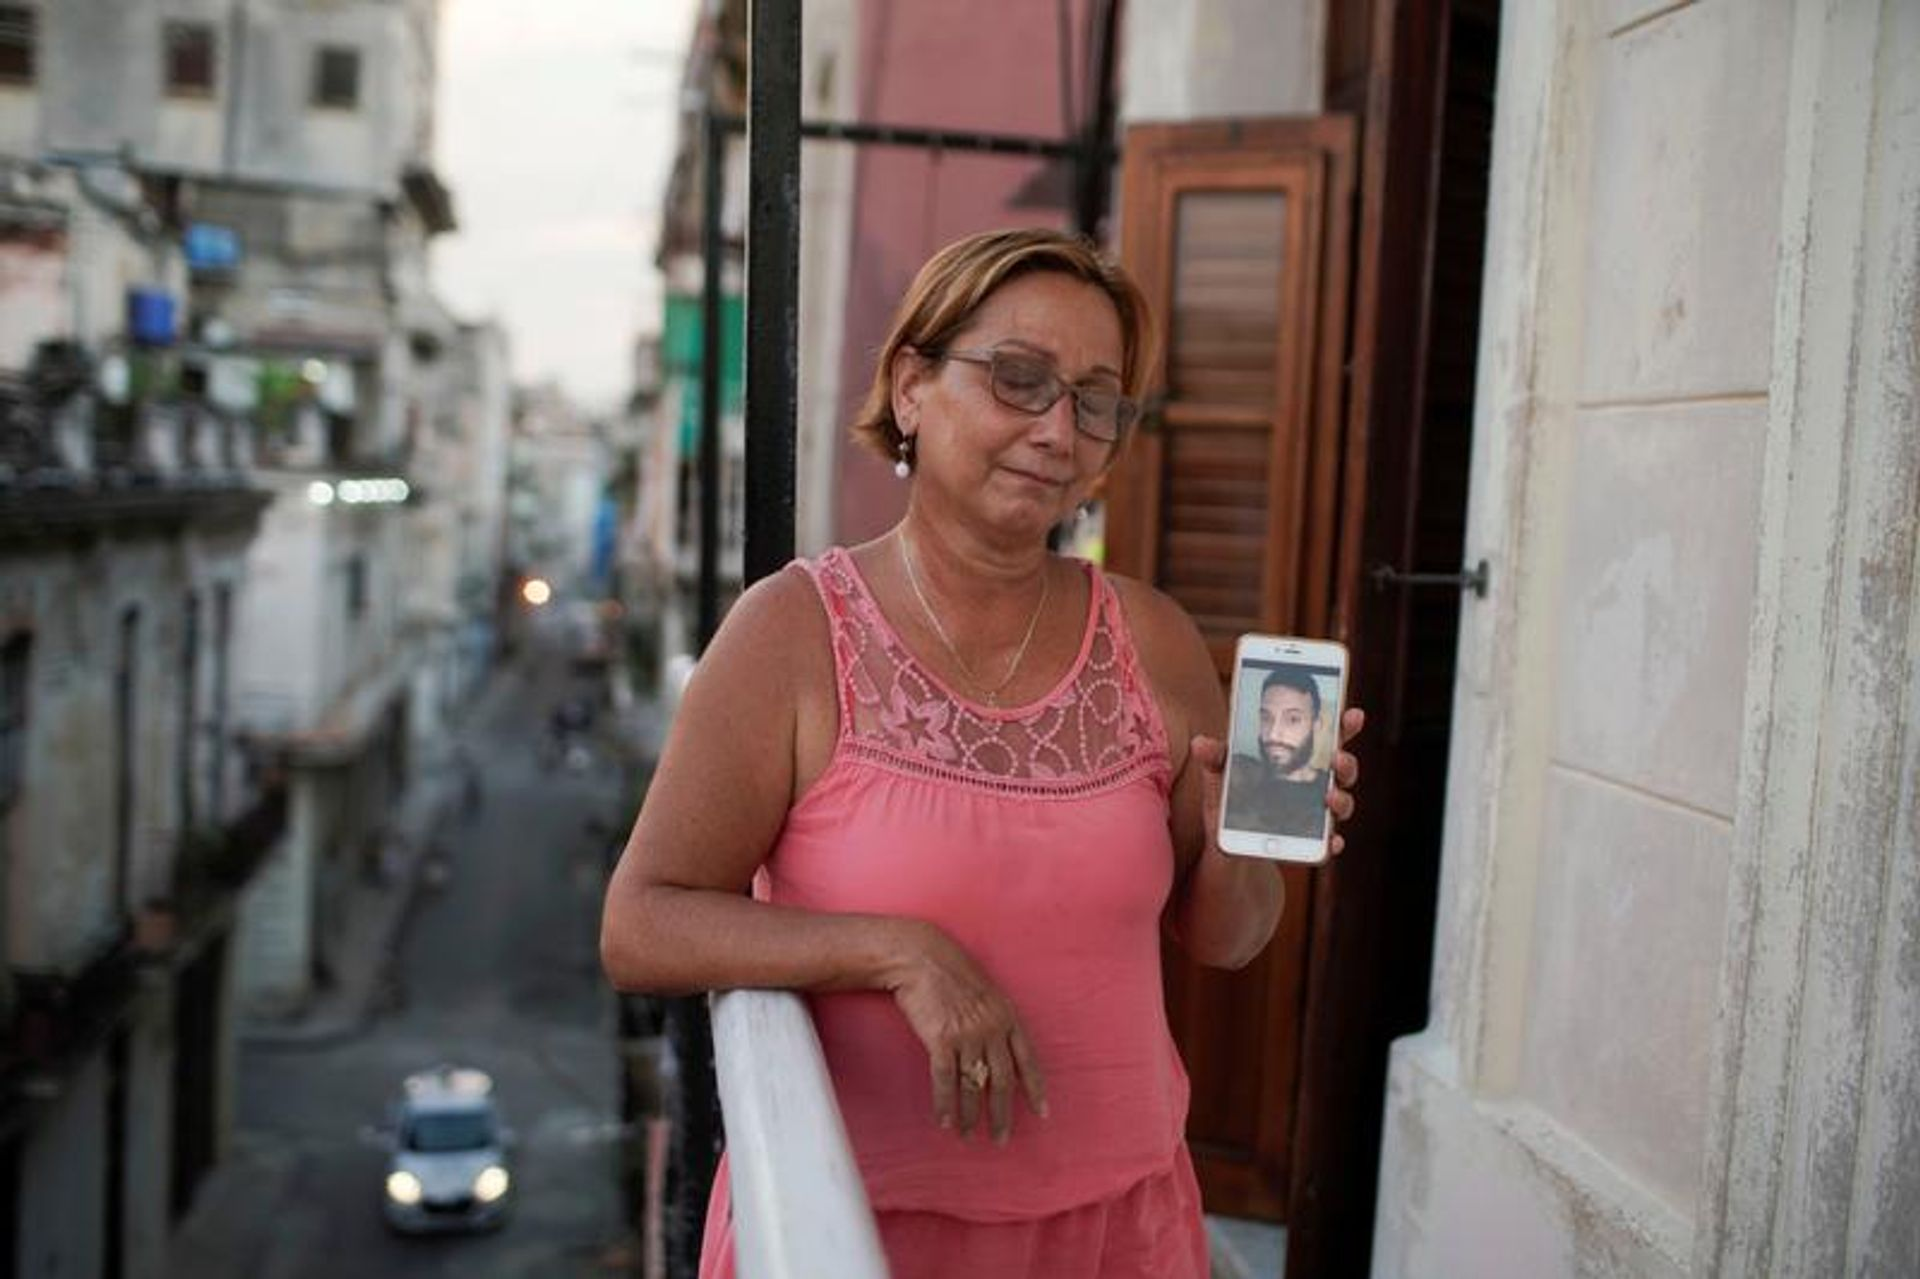 Raisa Gonzalez shows a picture of her son Anyelo Troya Gonzalez, an artist arrested after protests in Havana REUTERS/Alexandre Meneghini